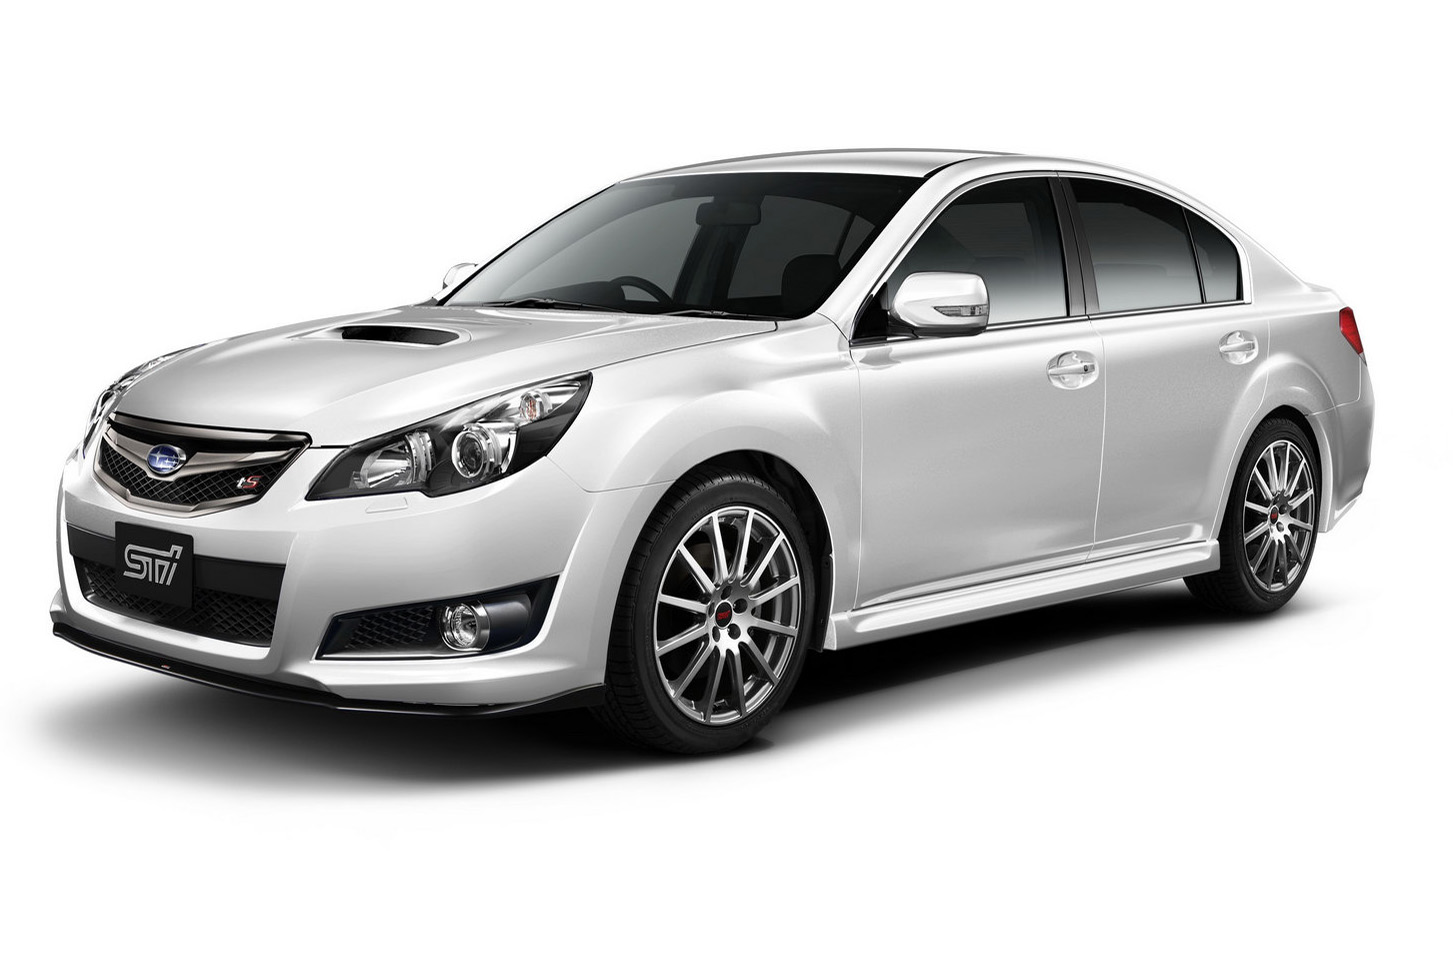 subaru releases jdm legacy touched by sti autoevolution. Black Bedroom Furniture Sets. Home Design Ideas